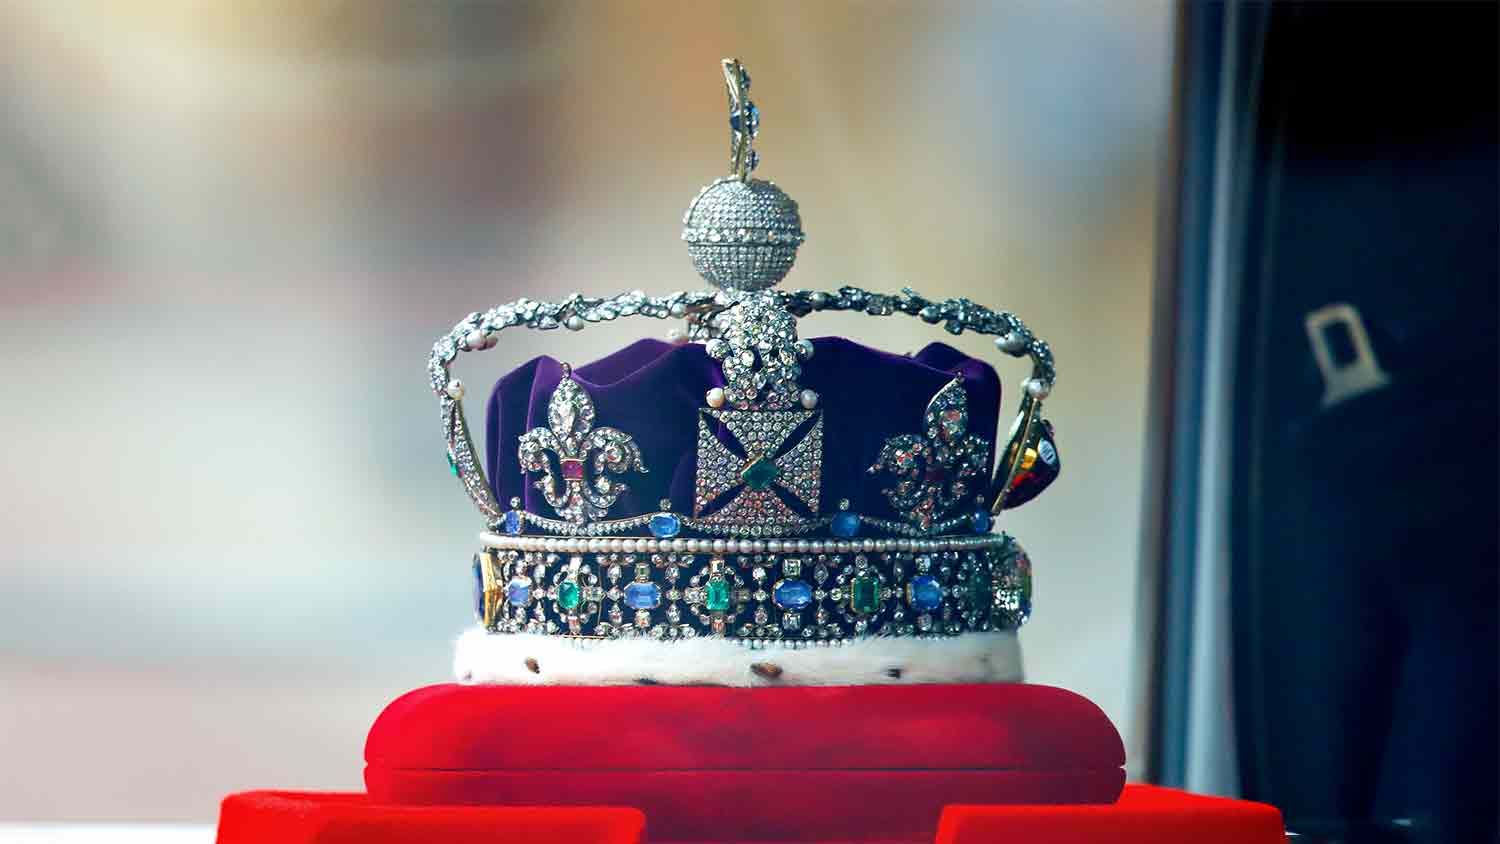 The crown jewels sat on a red velvet display unit